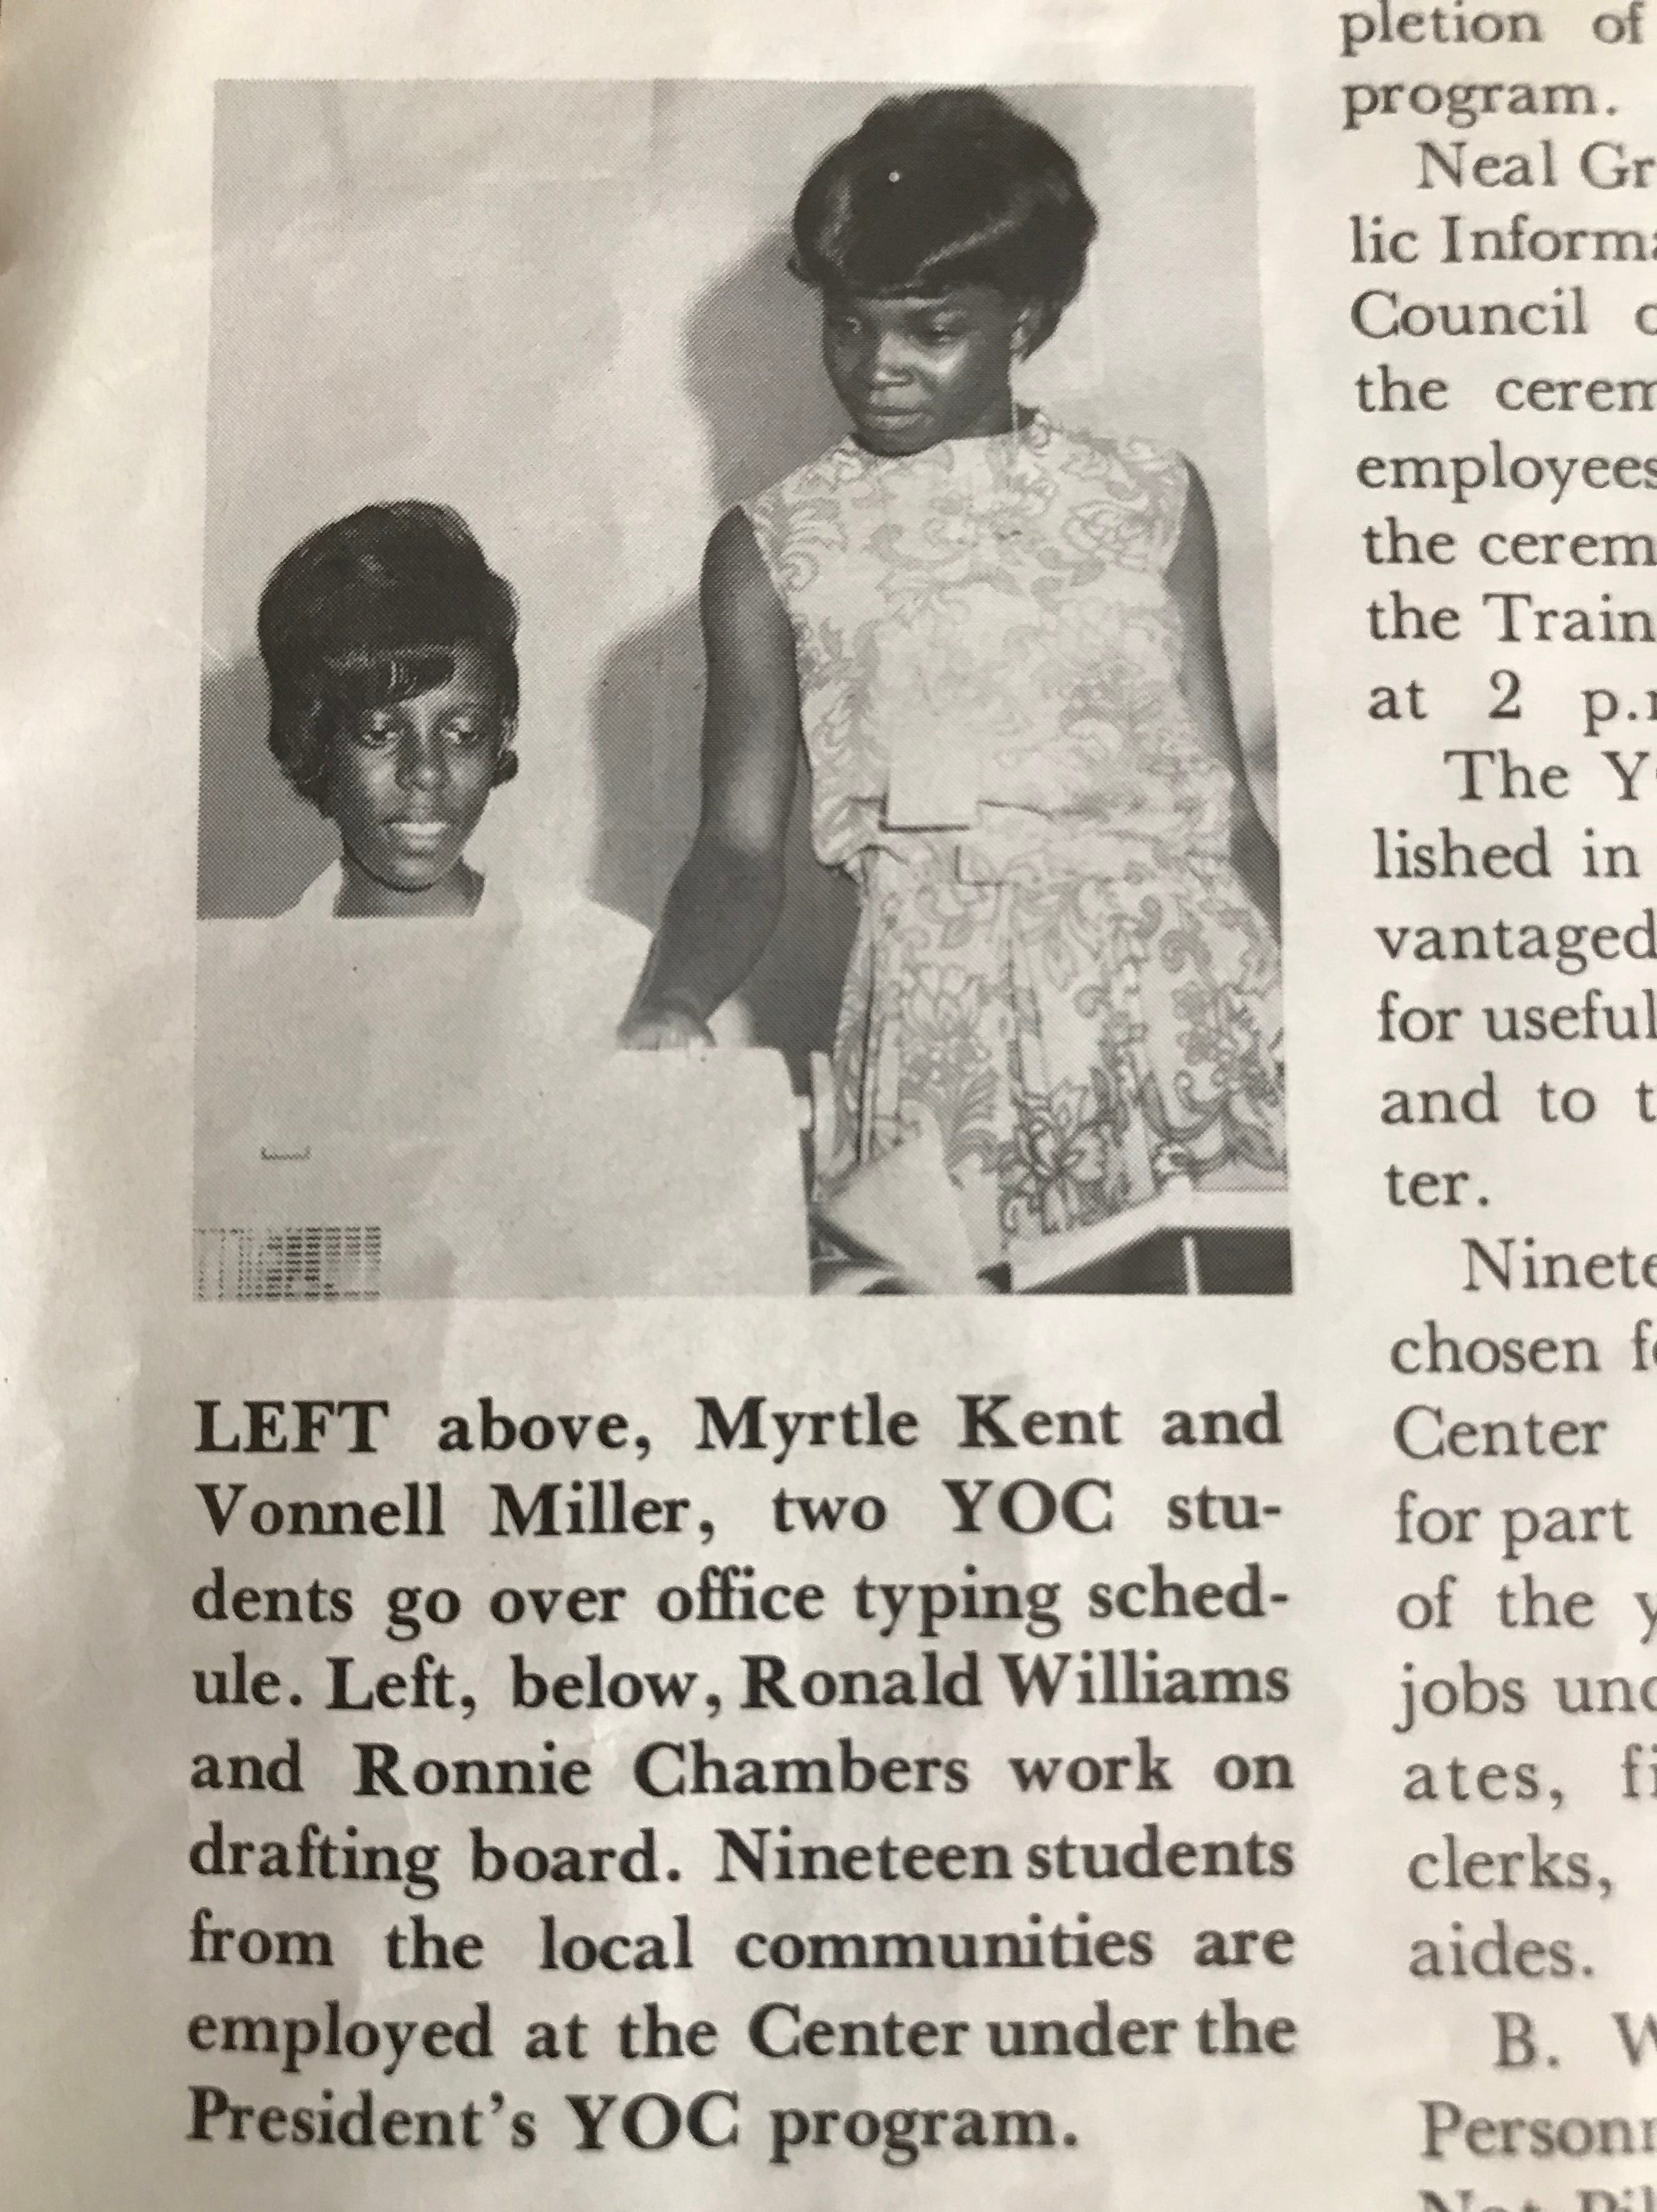 Myrtle Wilcox got her first job with NASA as part of a summer youth opportunity campaign after graduating from high school in 1967. Her maiden name is Kent.